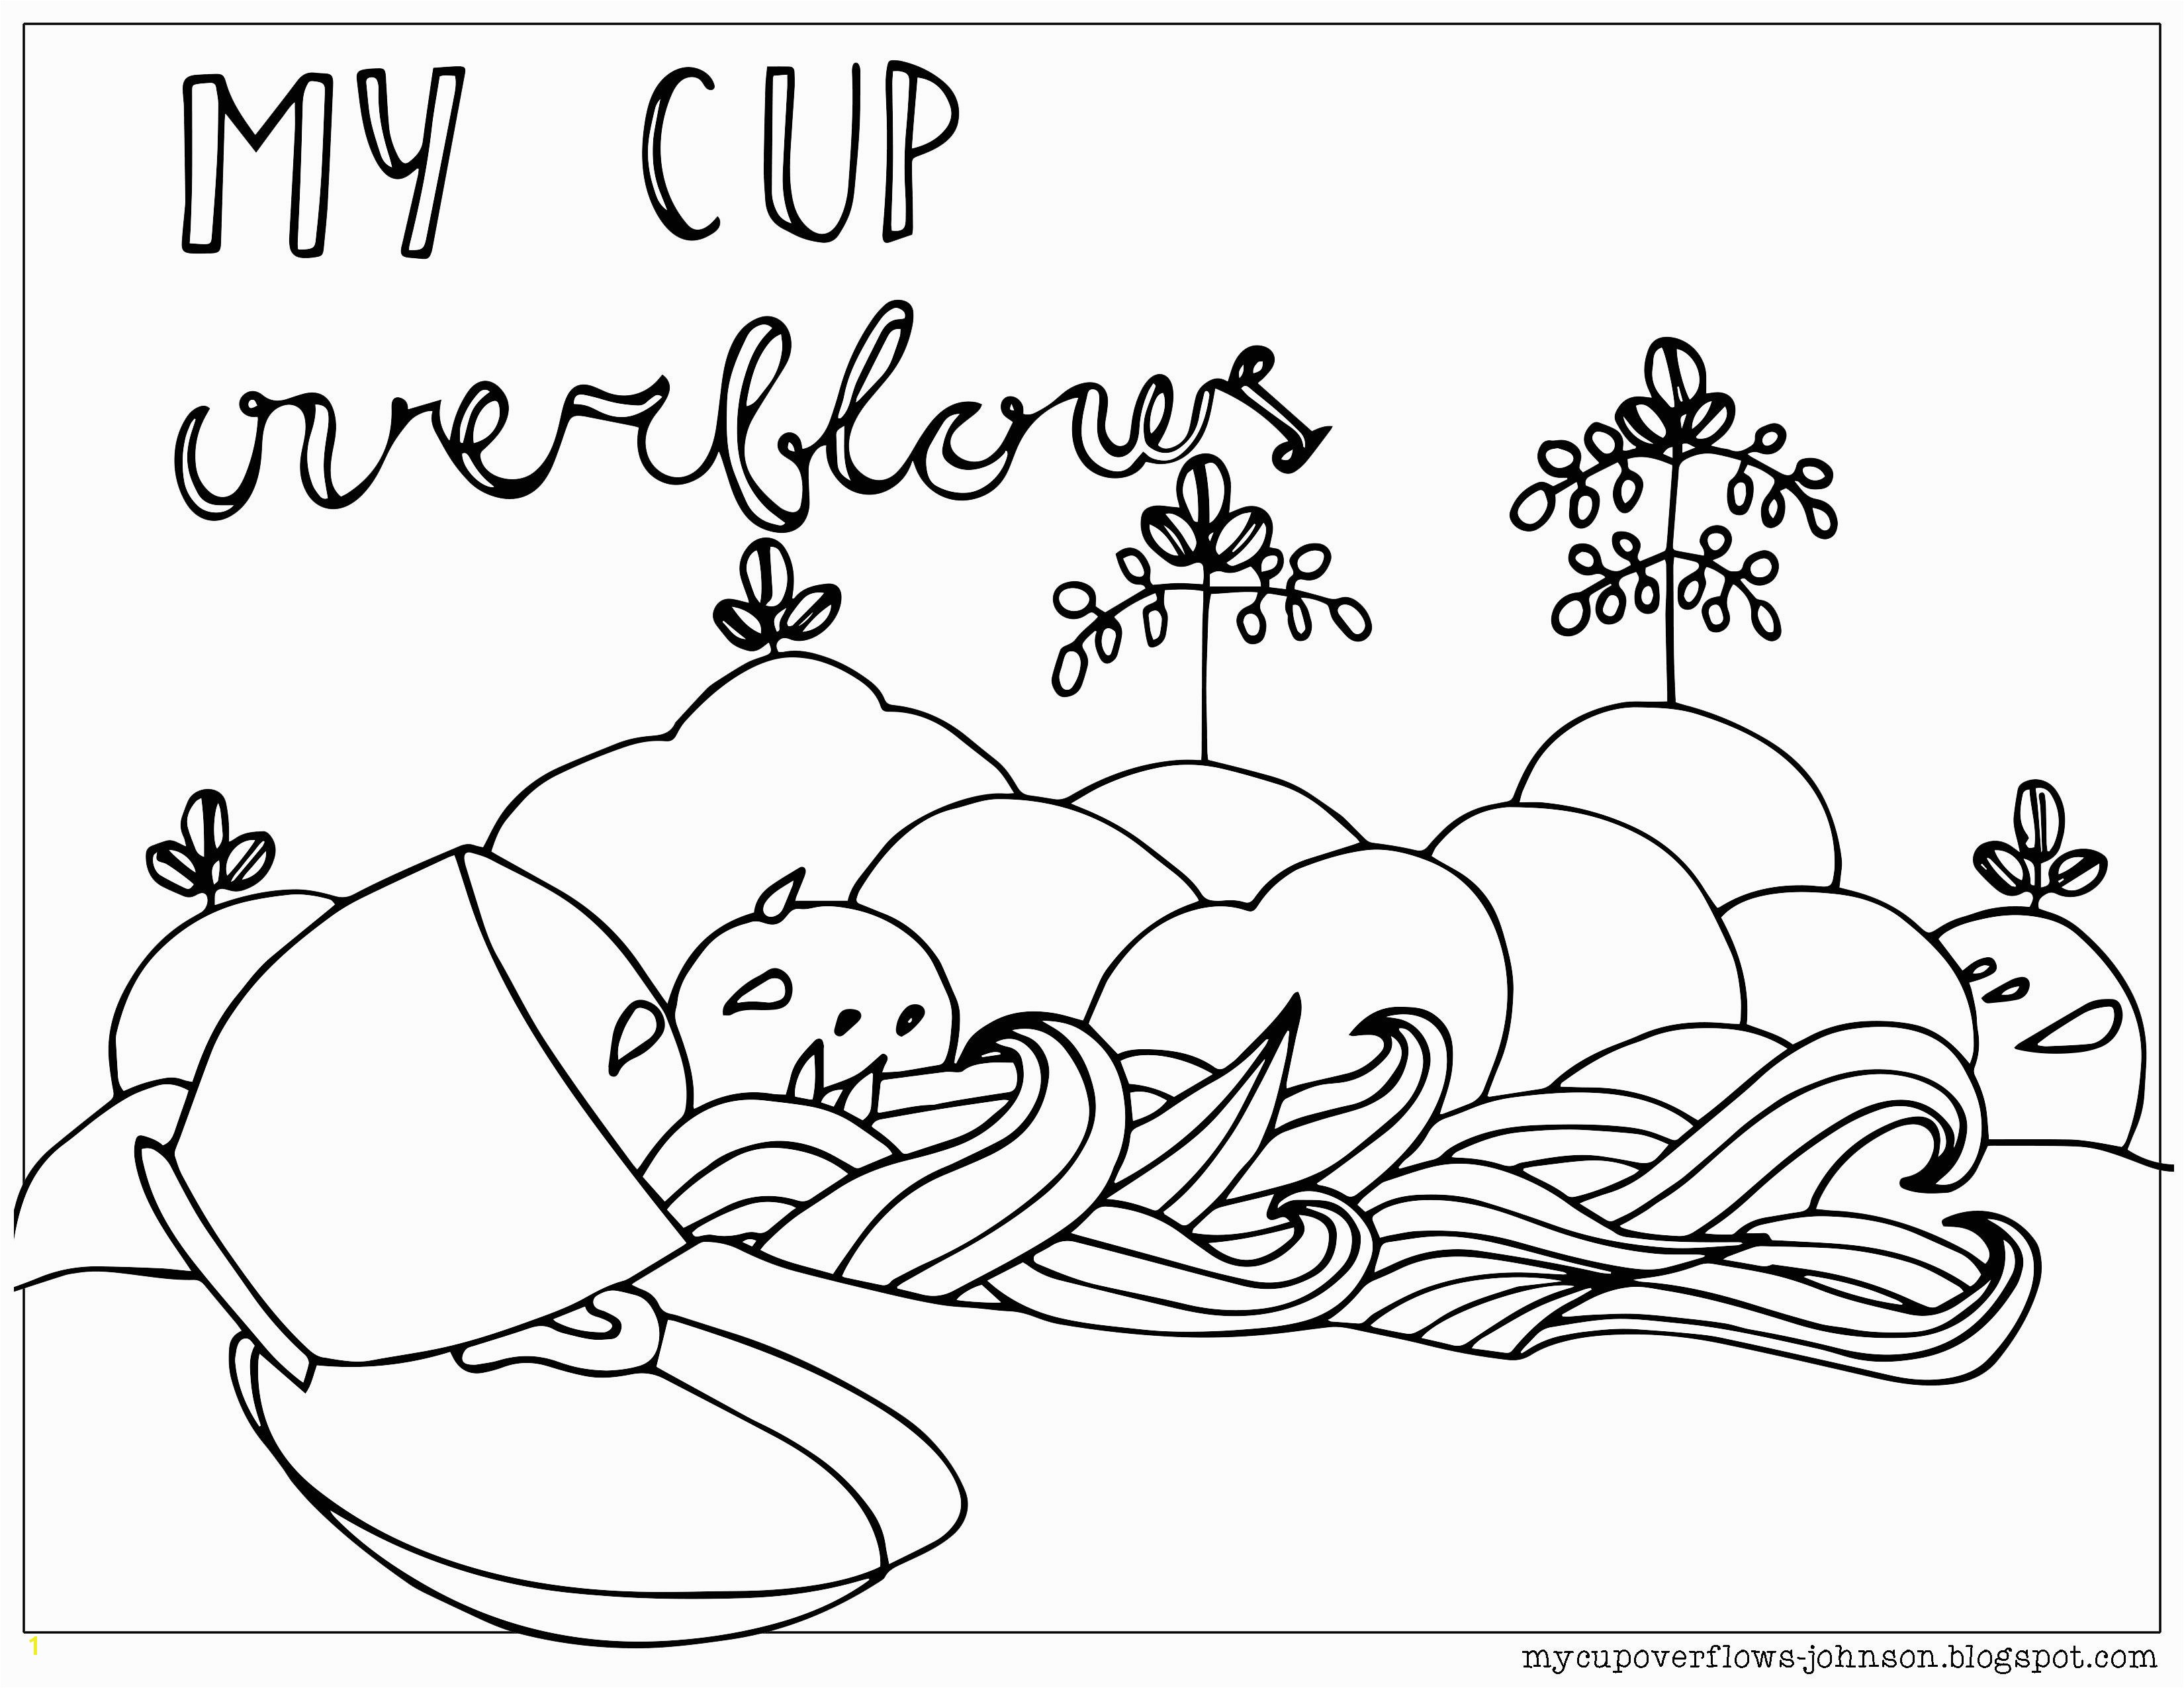 My Cup overflows coloring page Psalm 23 5 6